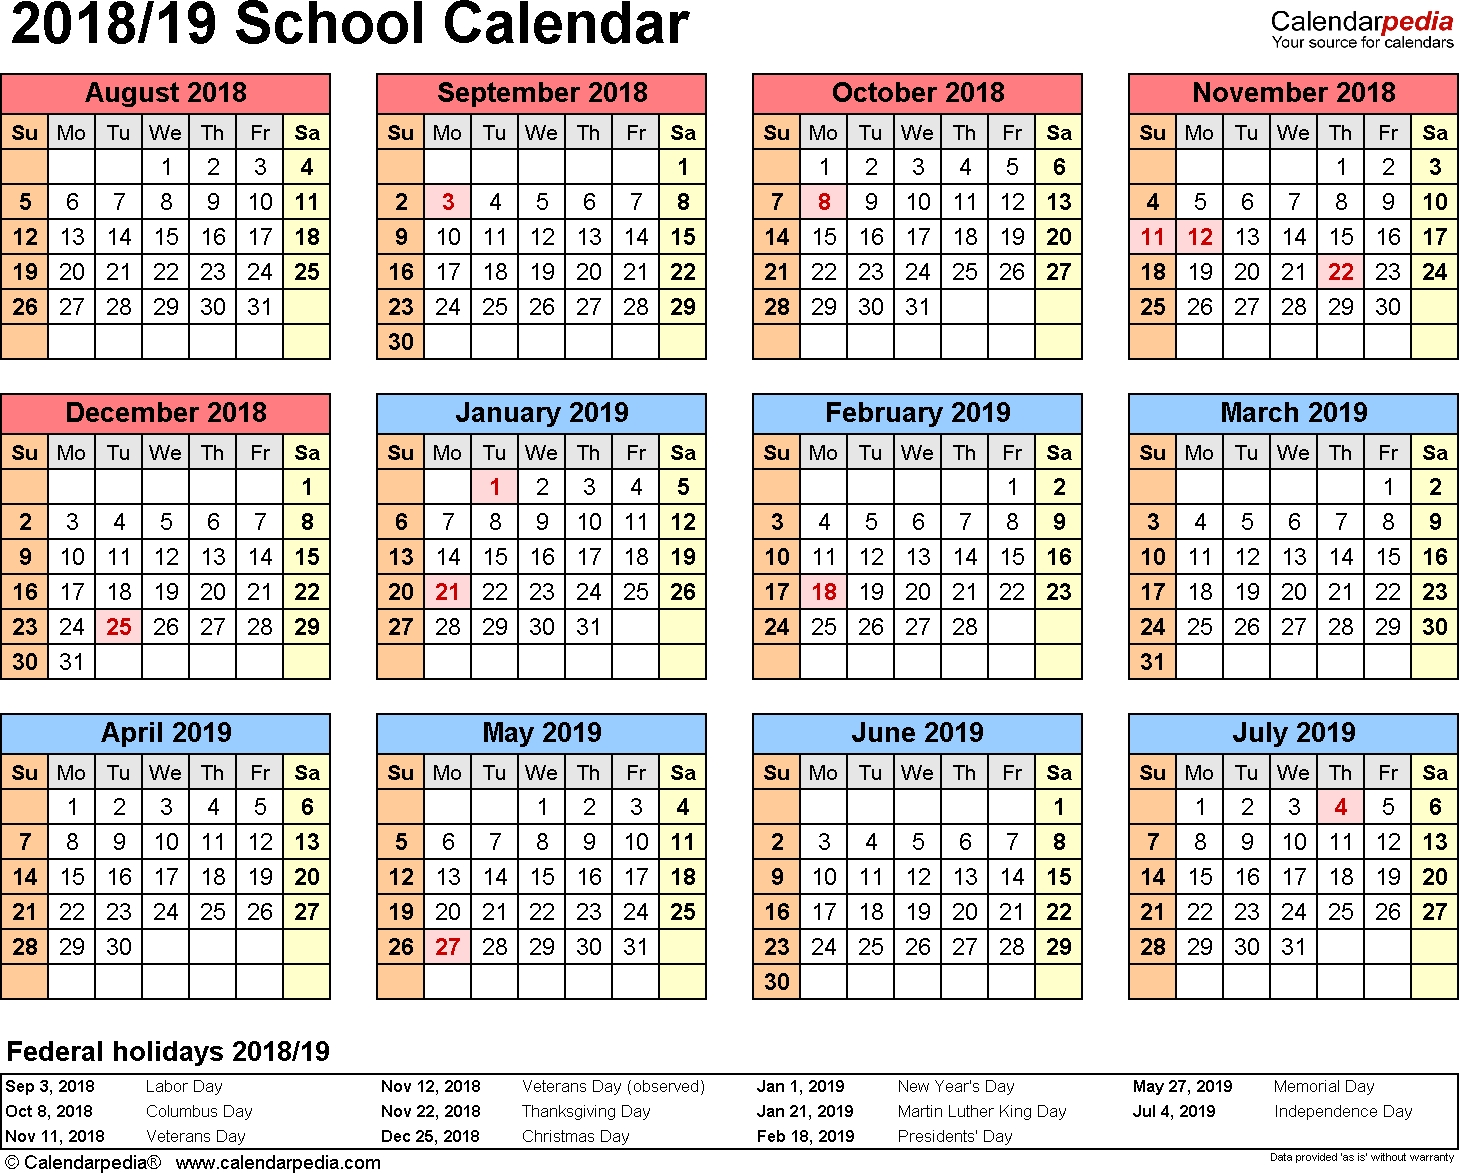 School Calendars 2018/2019 - Free Printable Word Templates